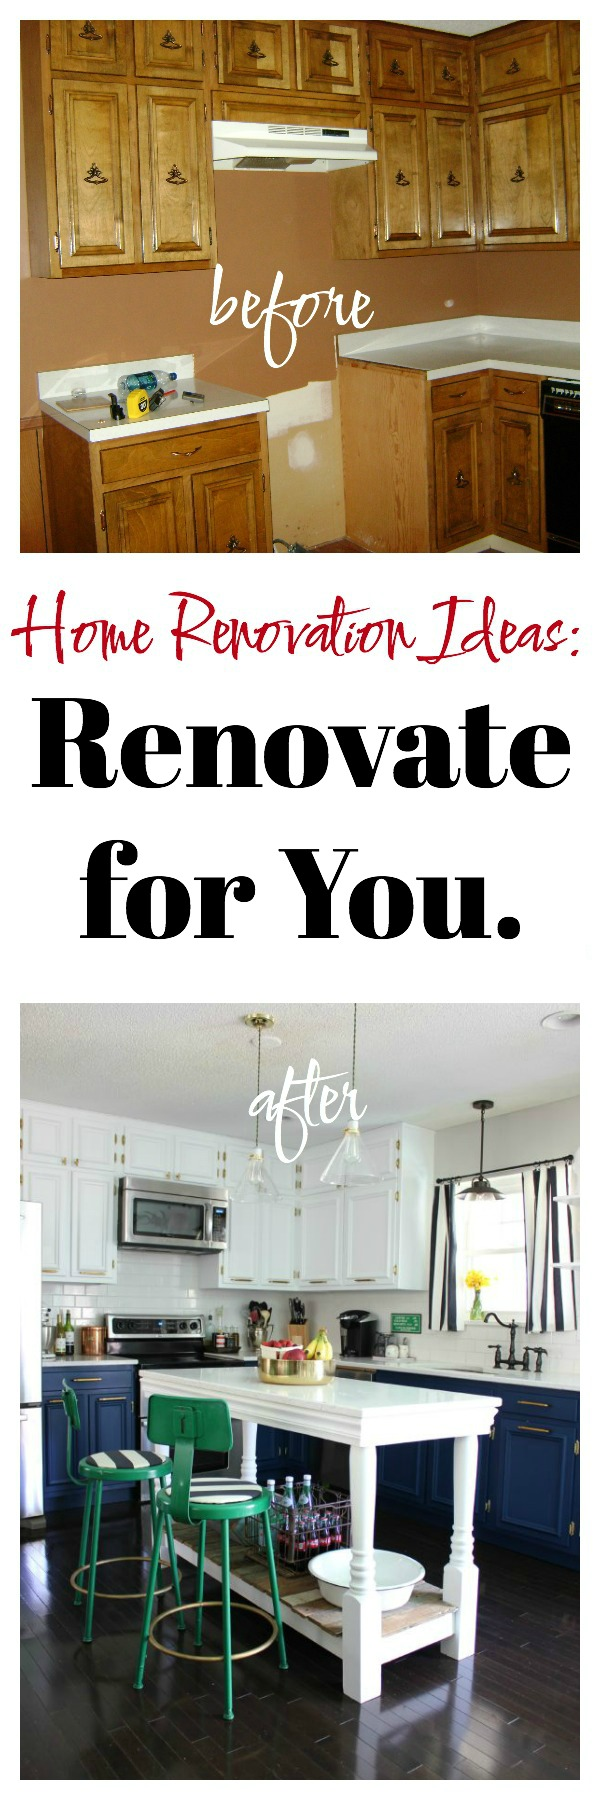 Remodeling Ideas on a Budget | Renovated Ranch House | Kitchen Remodeling Ideas | Home Remodeling Ideas | House Renovation Ideas